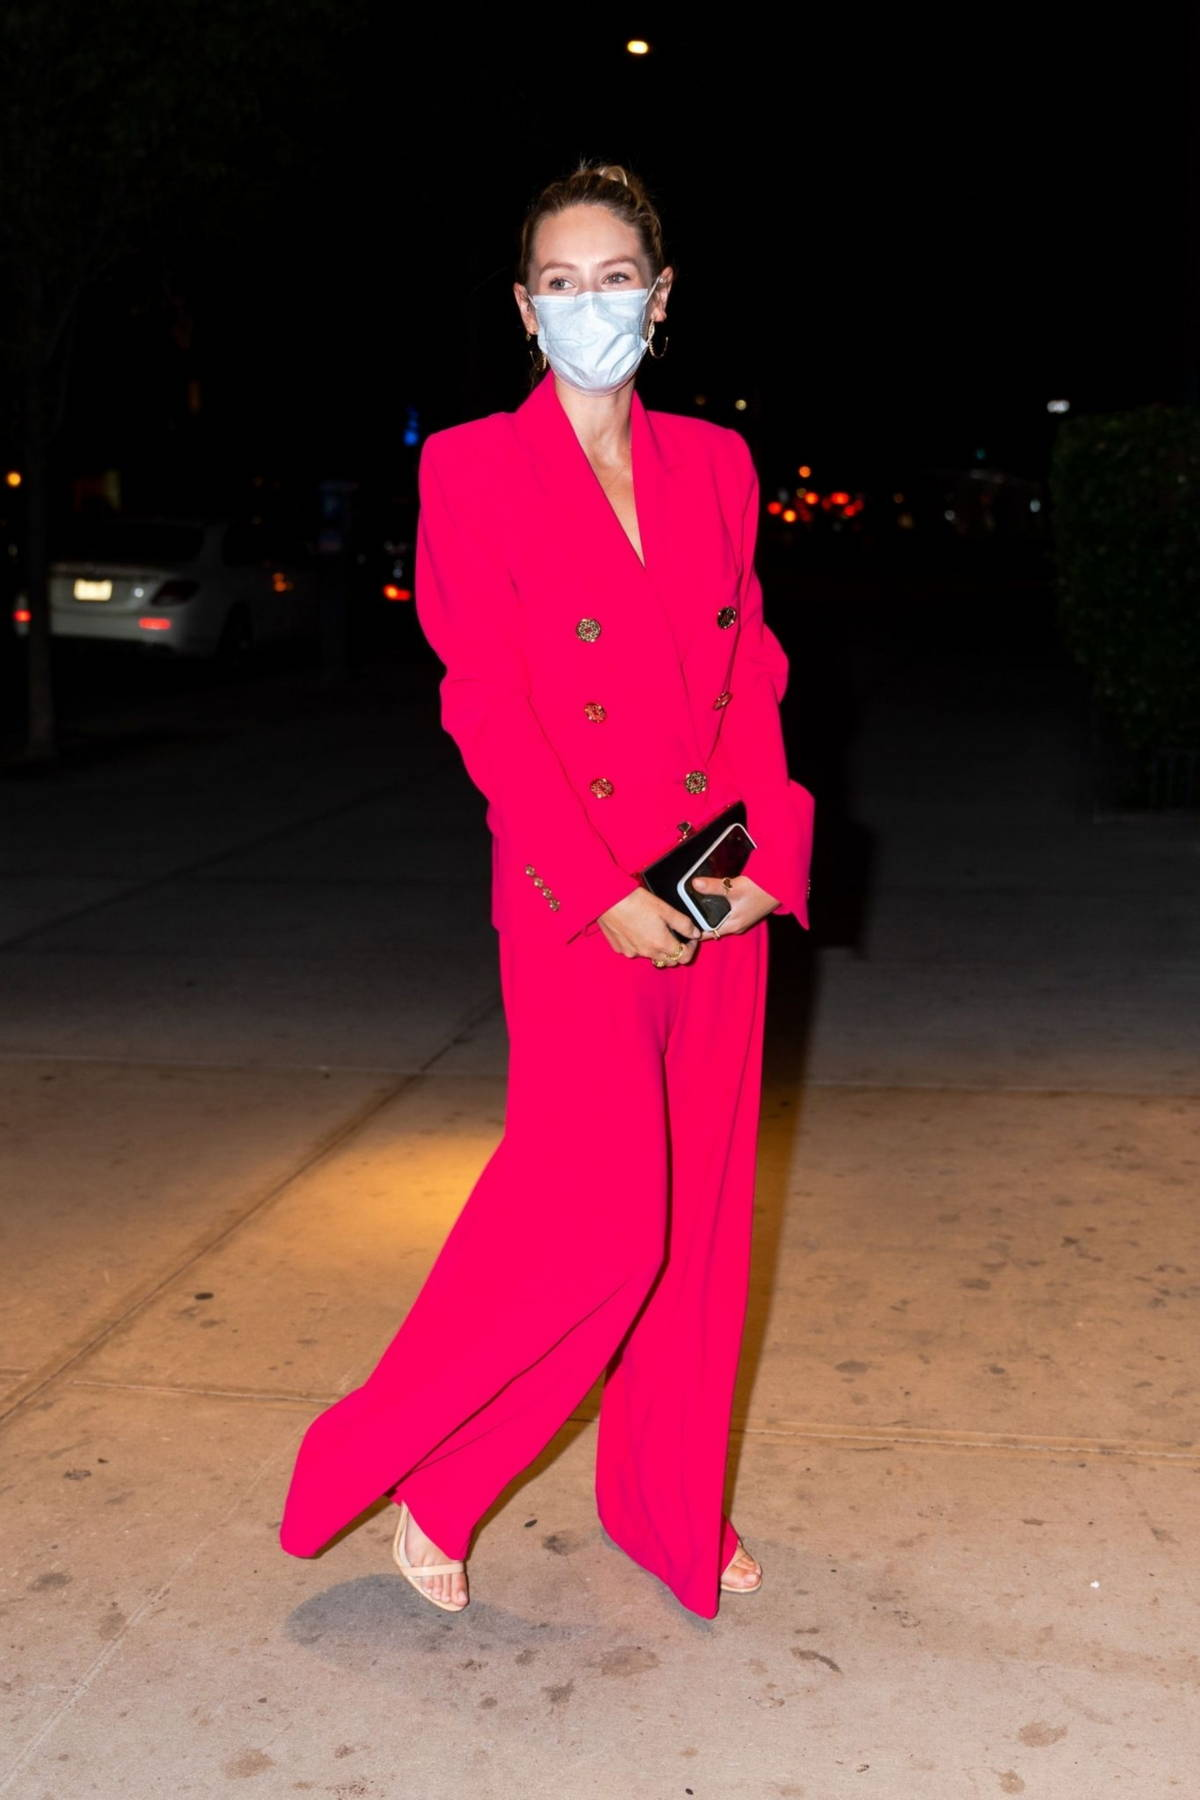 Dylan Penn looks striking in a hot pink suit as she steps out with her father Sean Penn in Tribeca, New York City